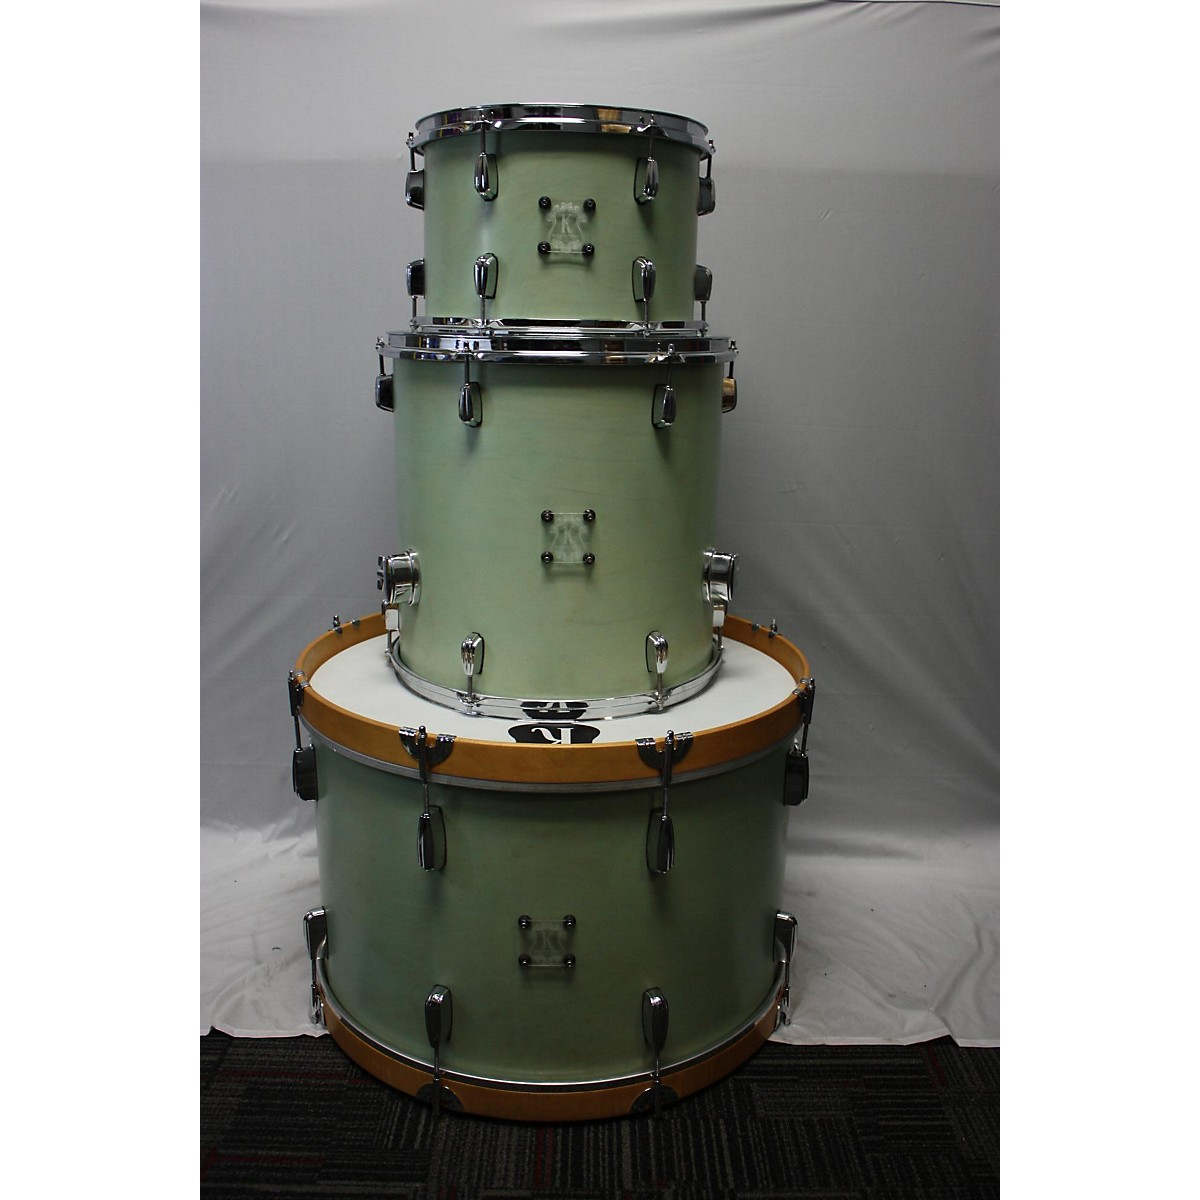 In Store Used Used Kingston Drum Company 3 piece 3 Piece Maple With Keller Shells Seafoam Green Drum Kit